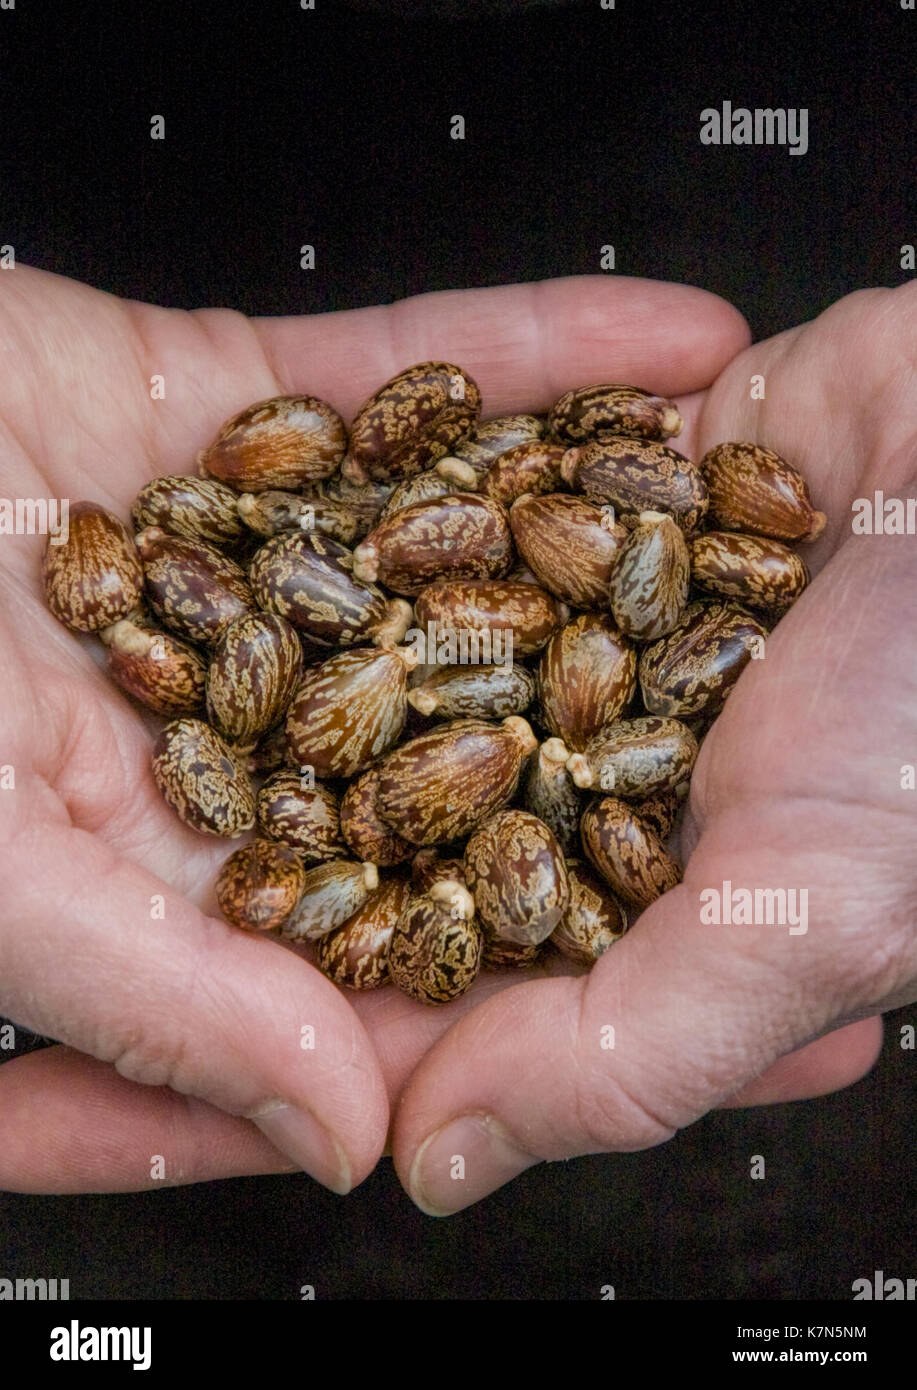 Hands Holding Seeds Of The Castor Oil Plant Ricinus Communis Stock Photo Alamy